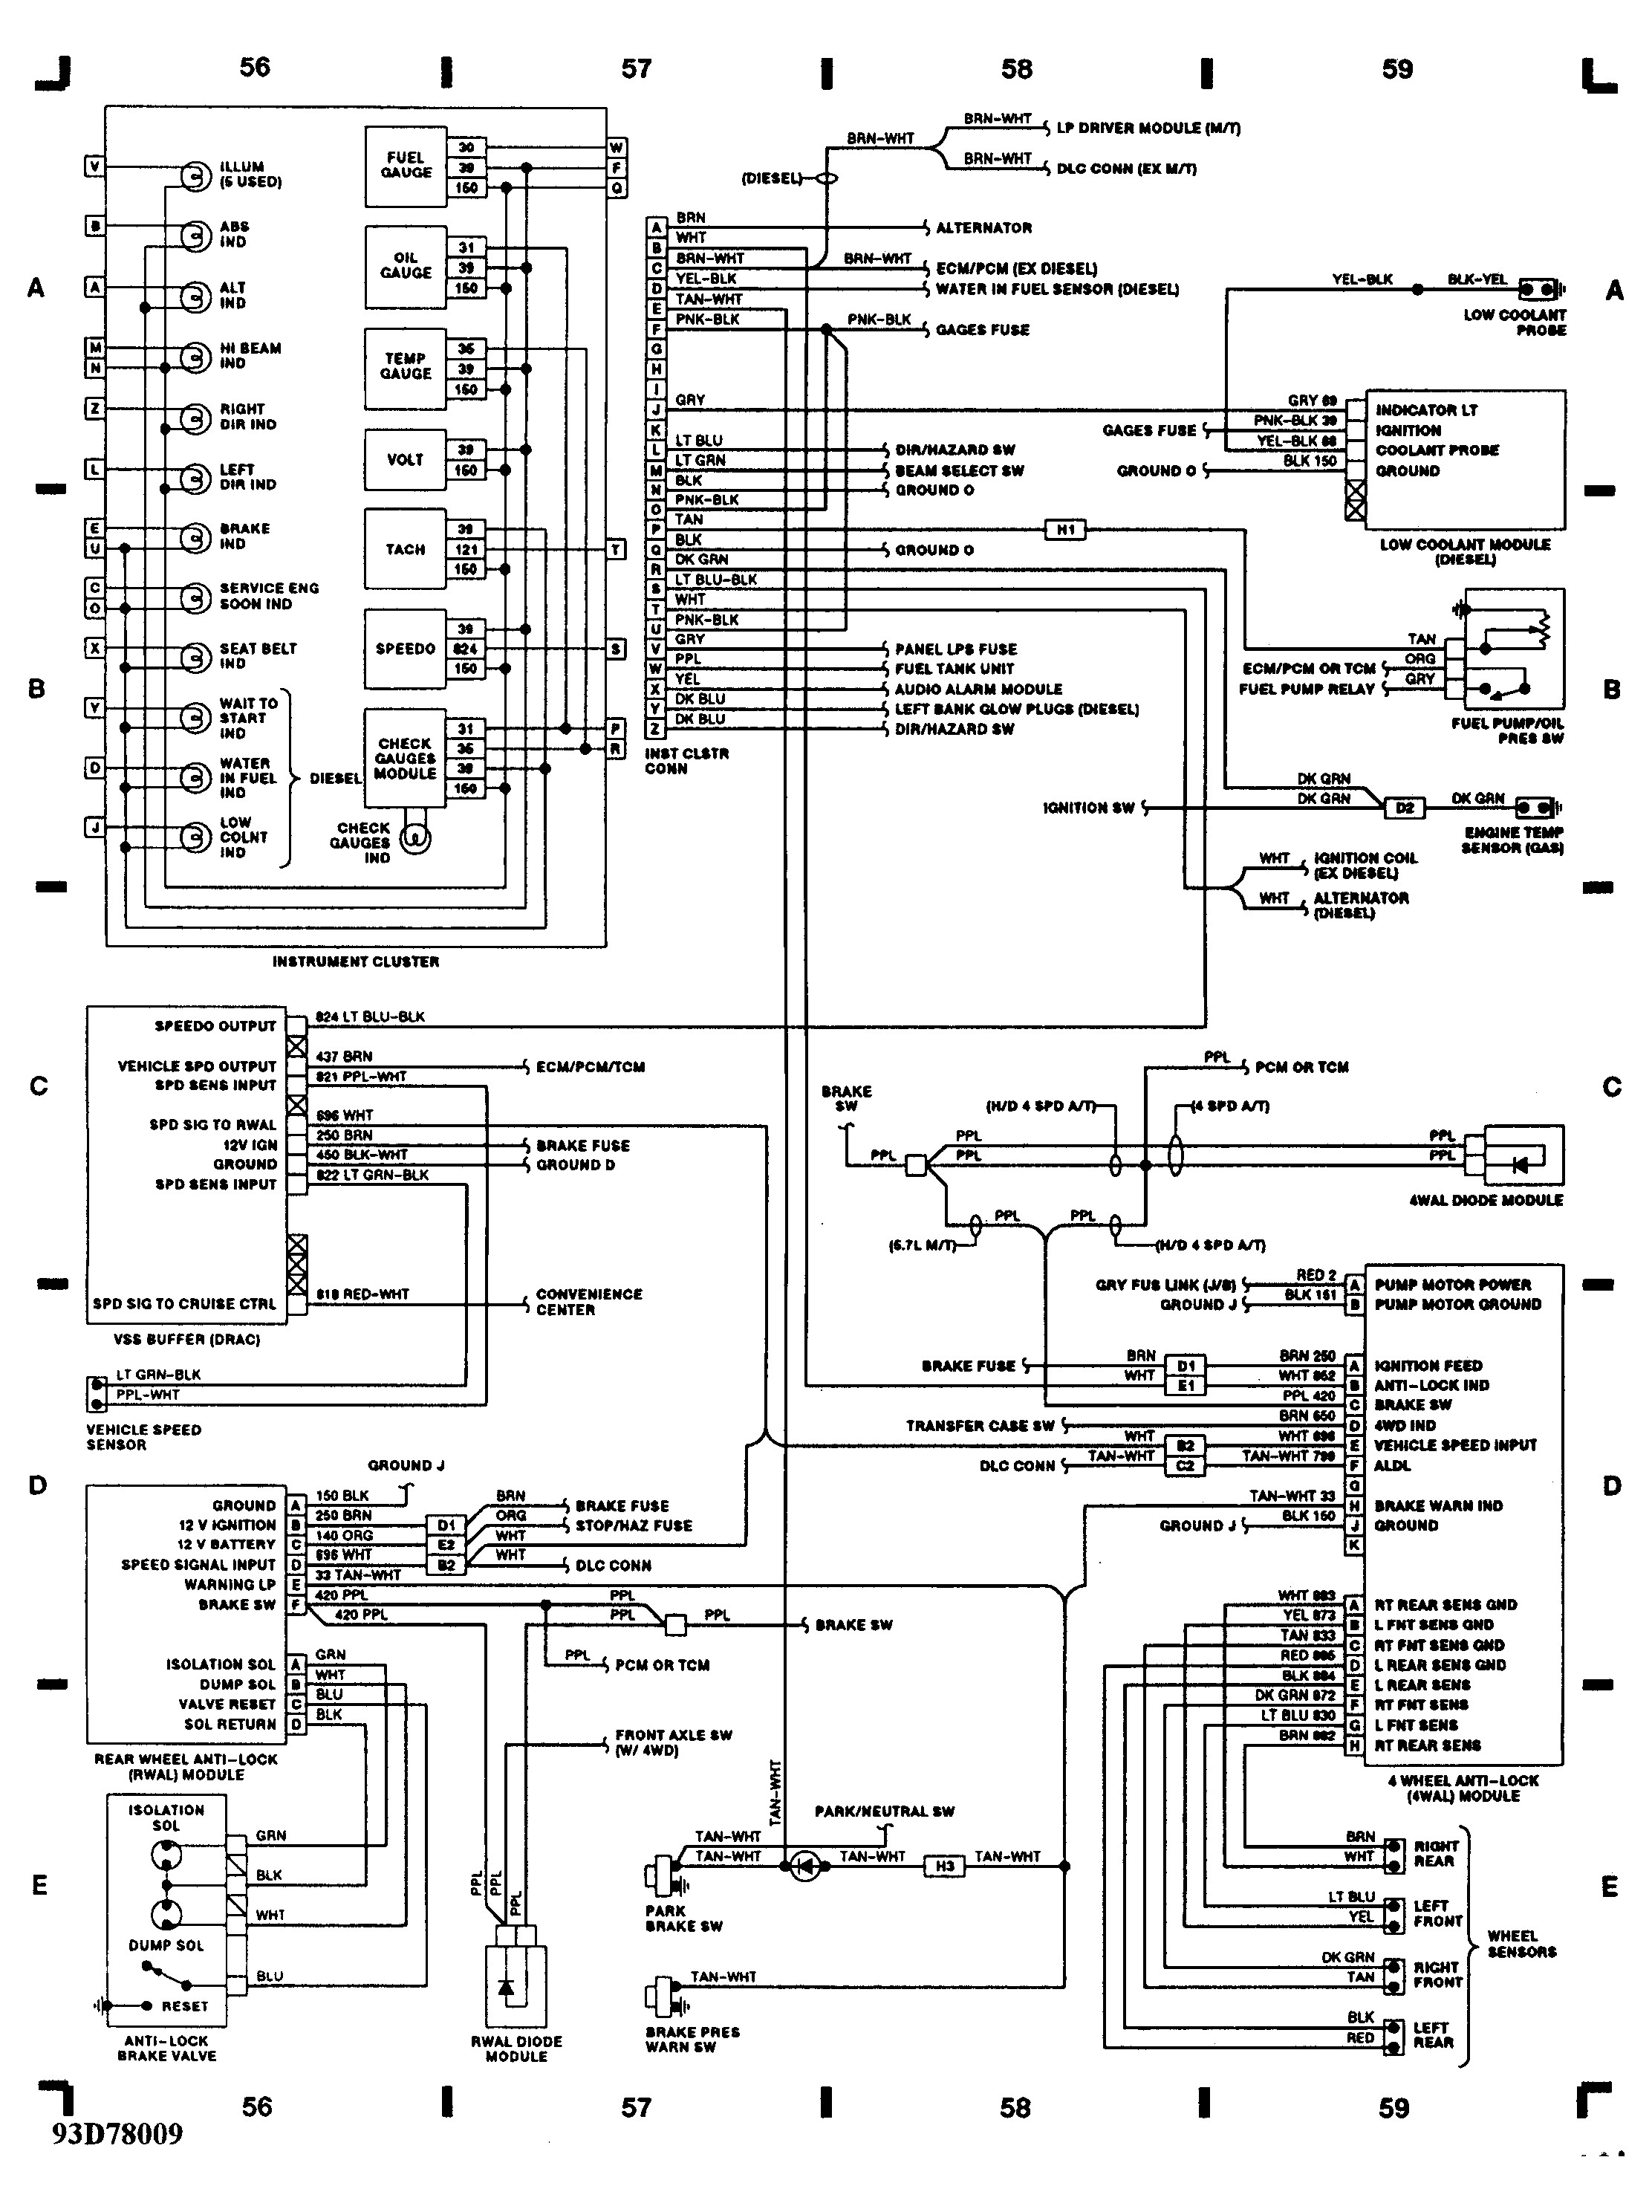 cat 3126 ecm wiring diagram | free wiring diagram ford stereo wiring diagrams color codes cat 7 wiring diagrams color #14